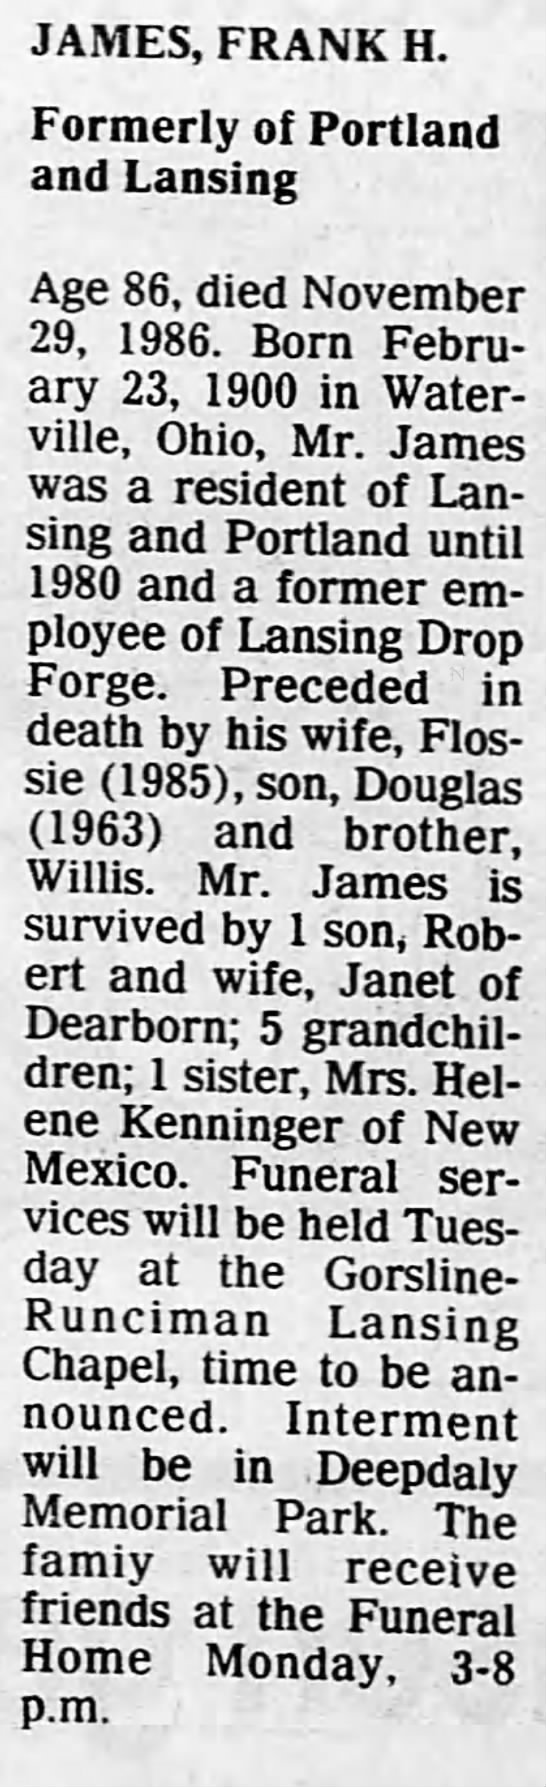 Frank H James Obituary in Lansing State Journal Sunday 30 Nov 1986 - JAMES, FRANK H. Formerly of Portland and...